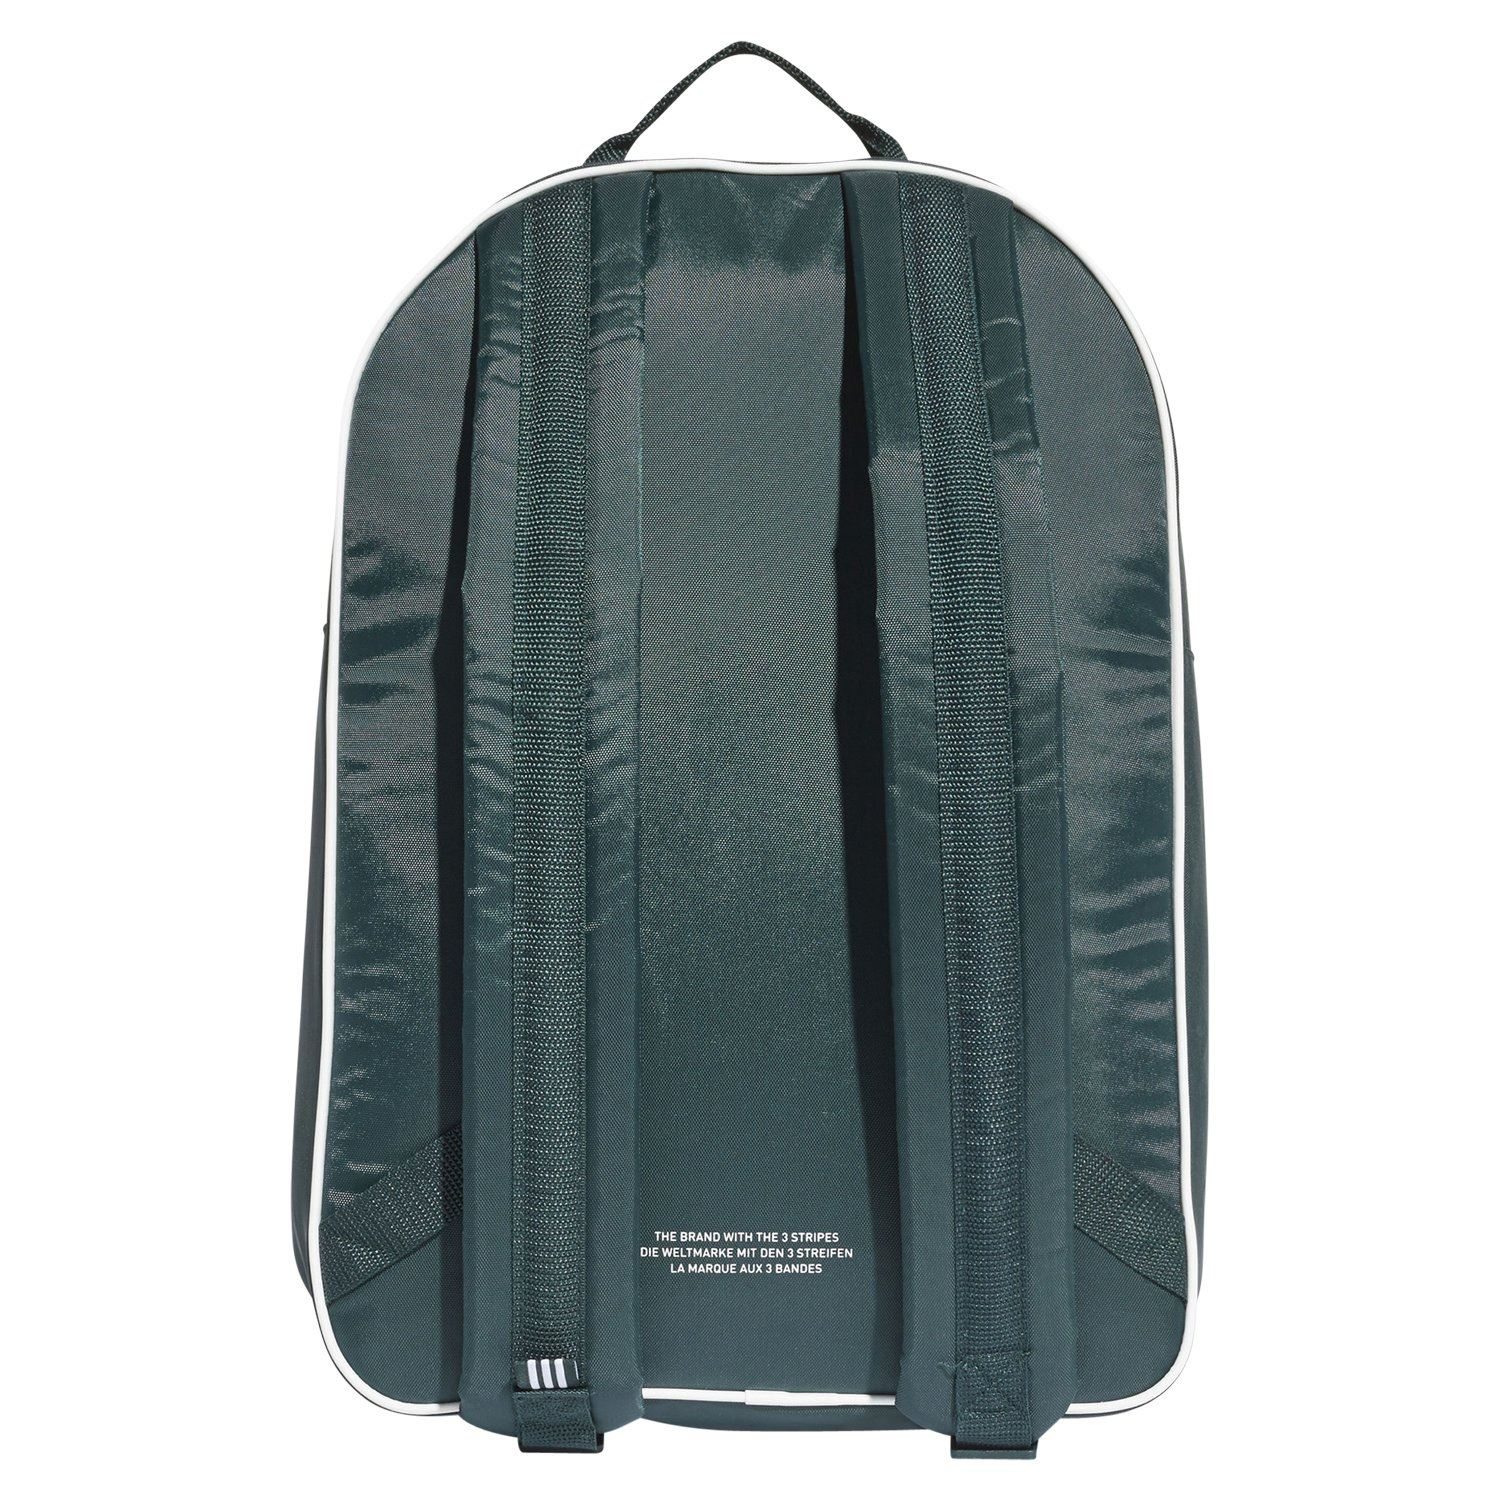 faef1c3c971ac Adidas ORIGINALS ADICOLOR TREFOIL Rucksack GREEN BAG COLLEGE UNIVERSITY  RETRO